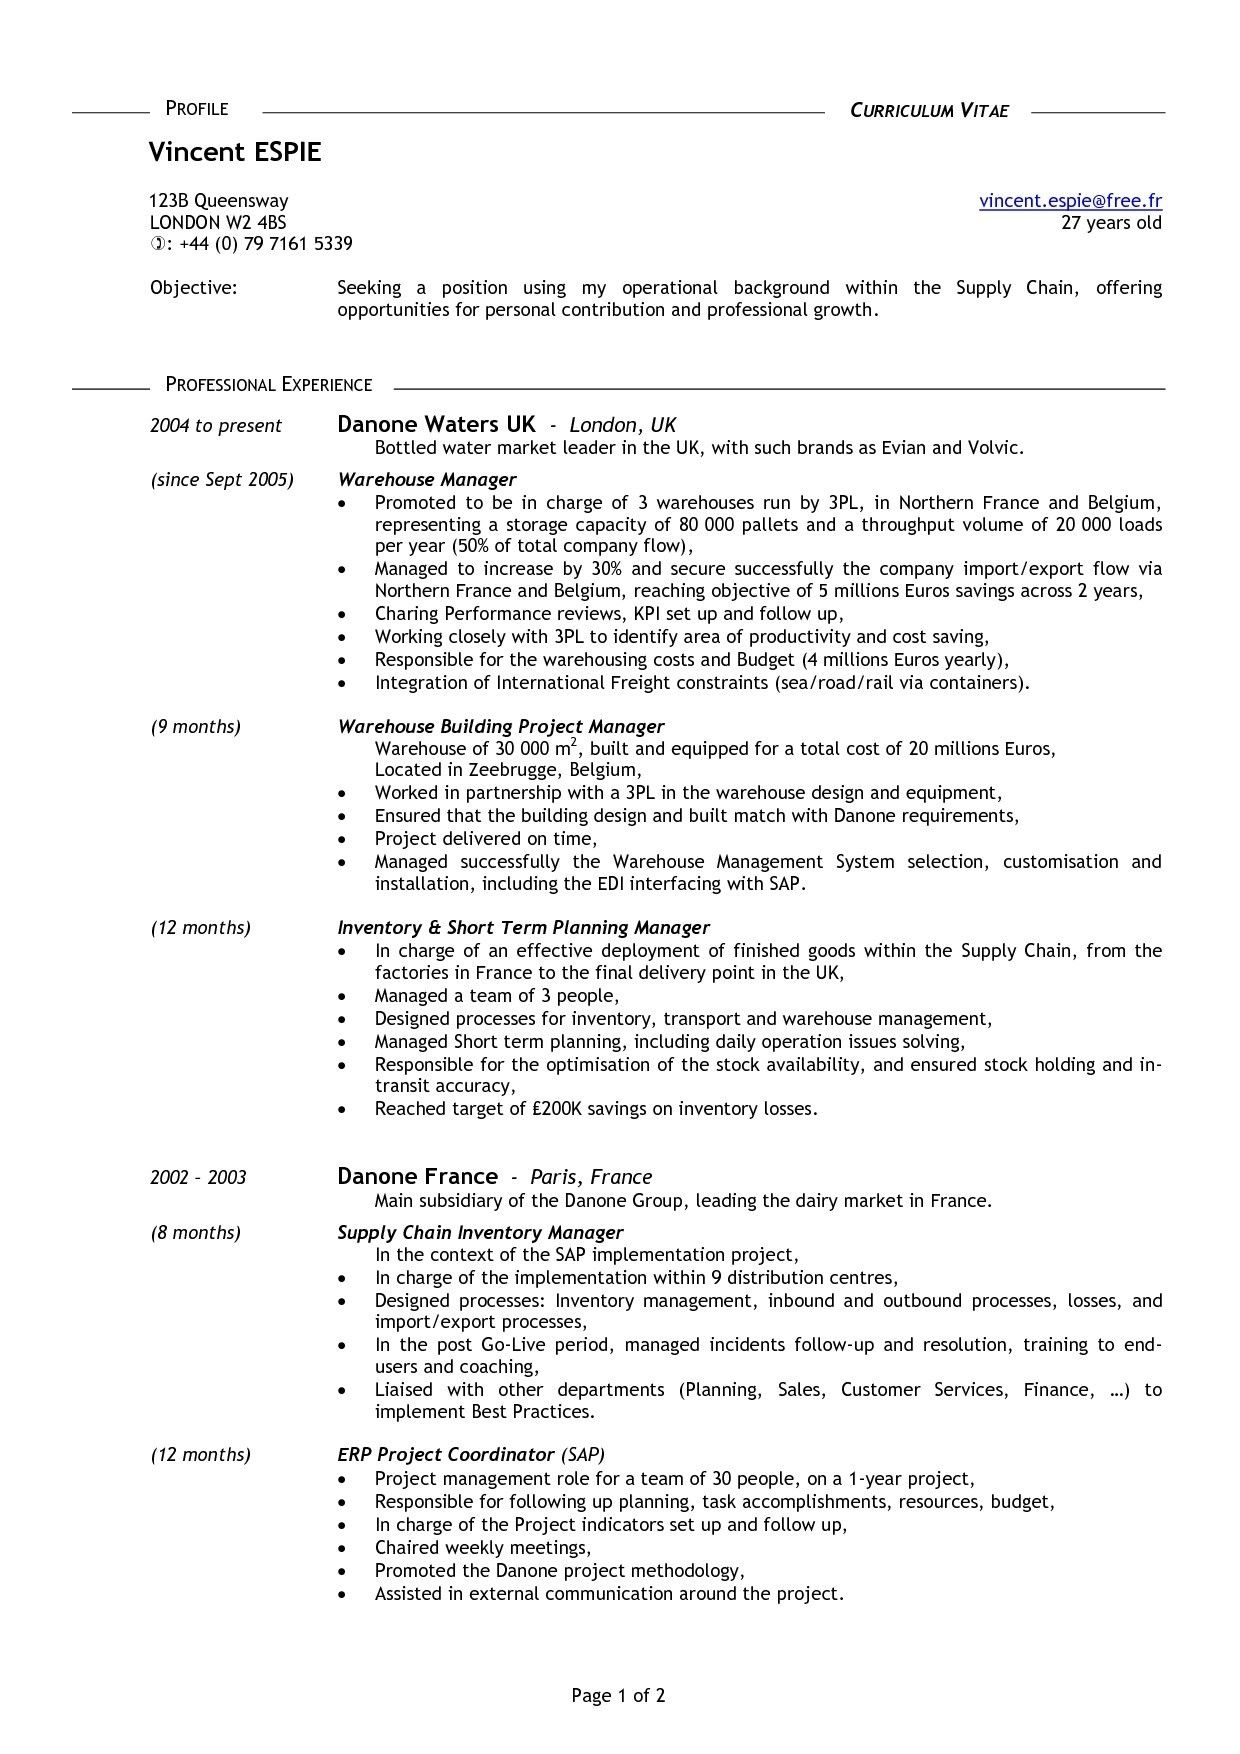 Resume Templates For 16 Year Olds #resume #ResumeTemplates #templates